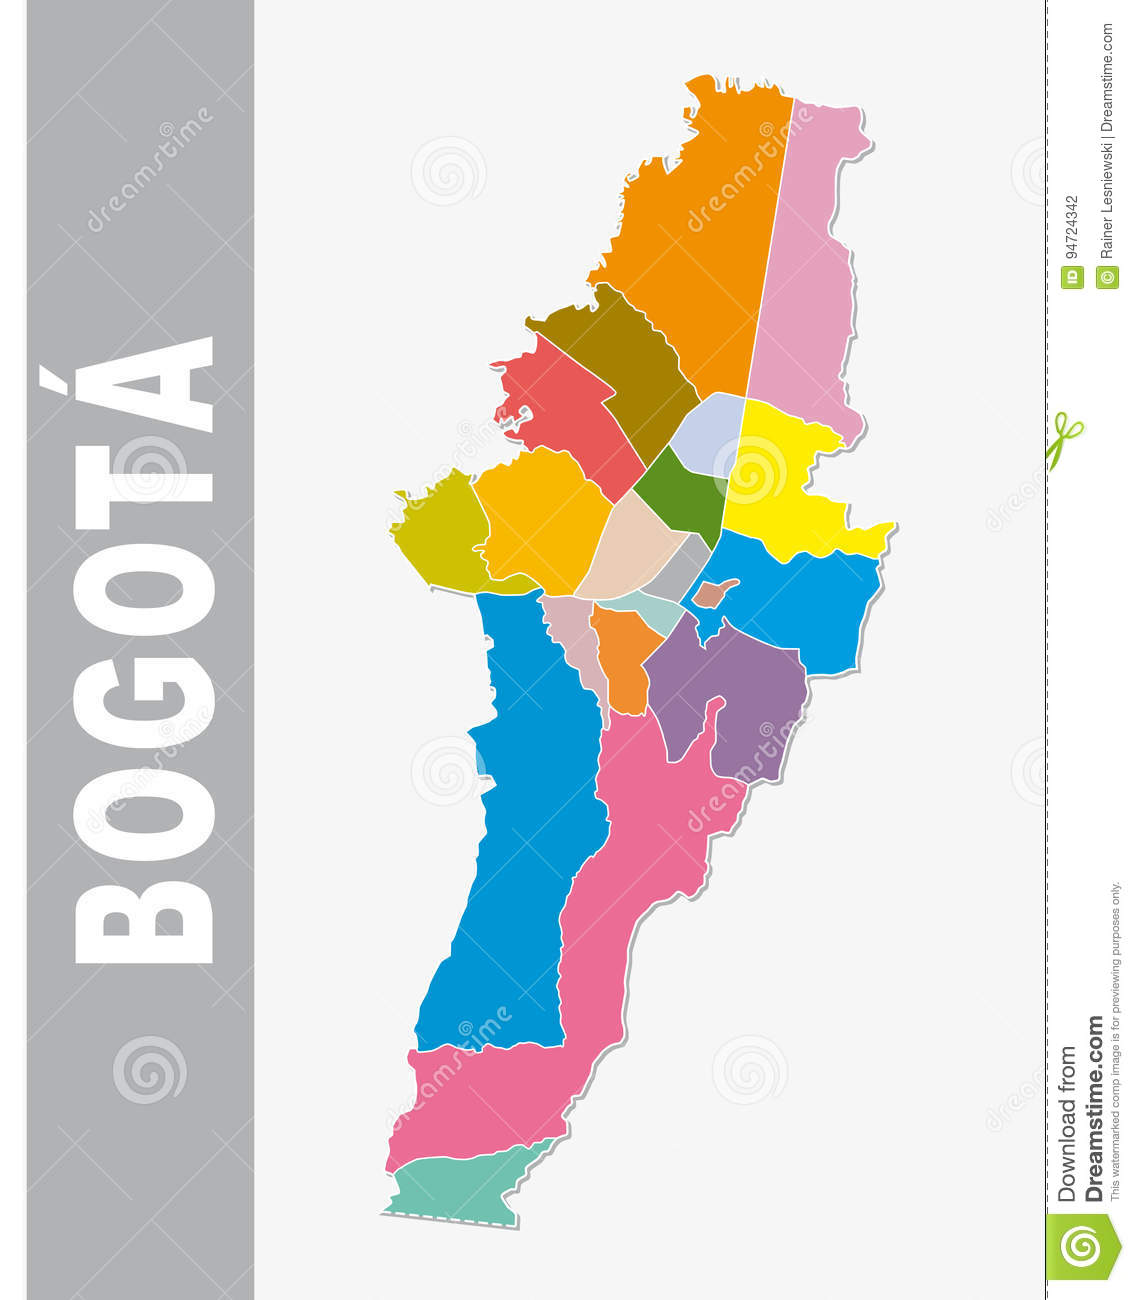 Colorful Bogota Administrative And Political Vector Map Stock Vector on